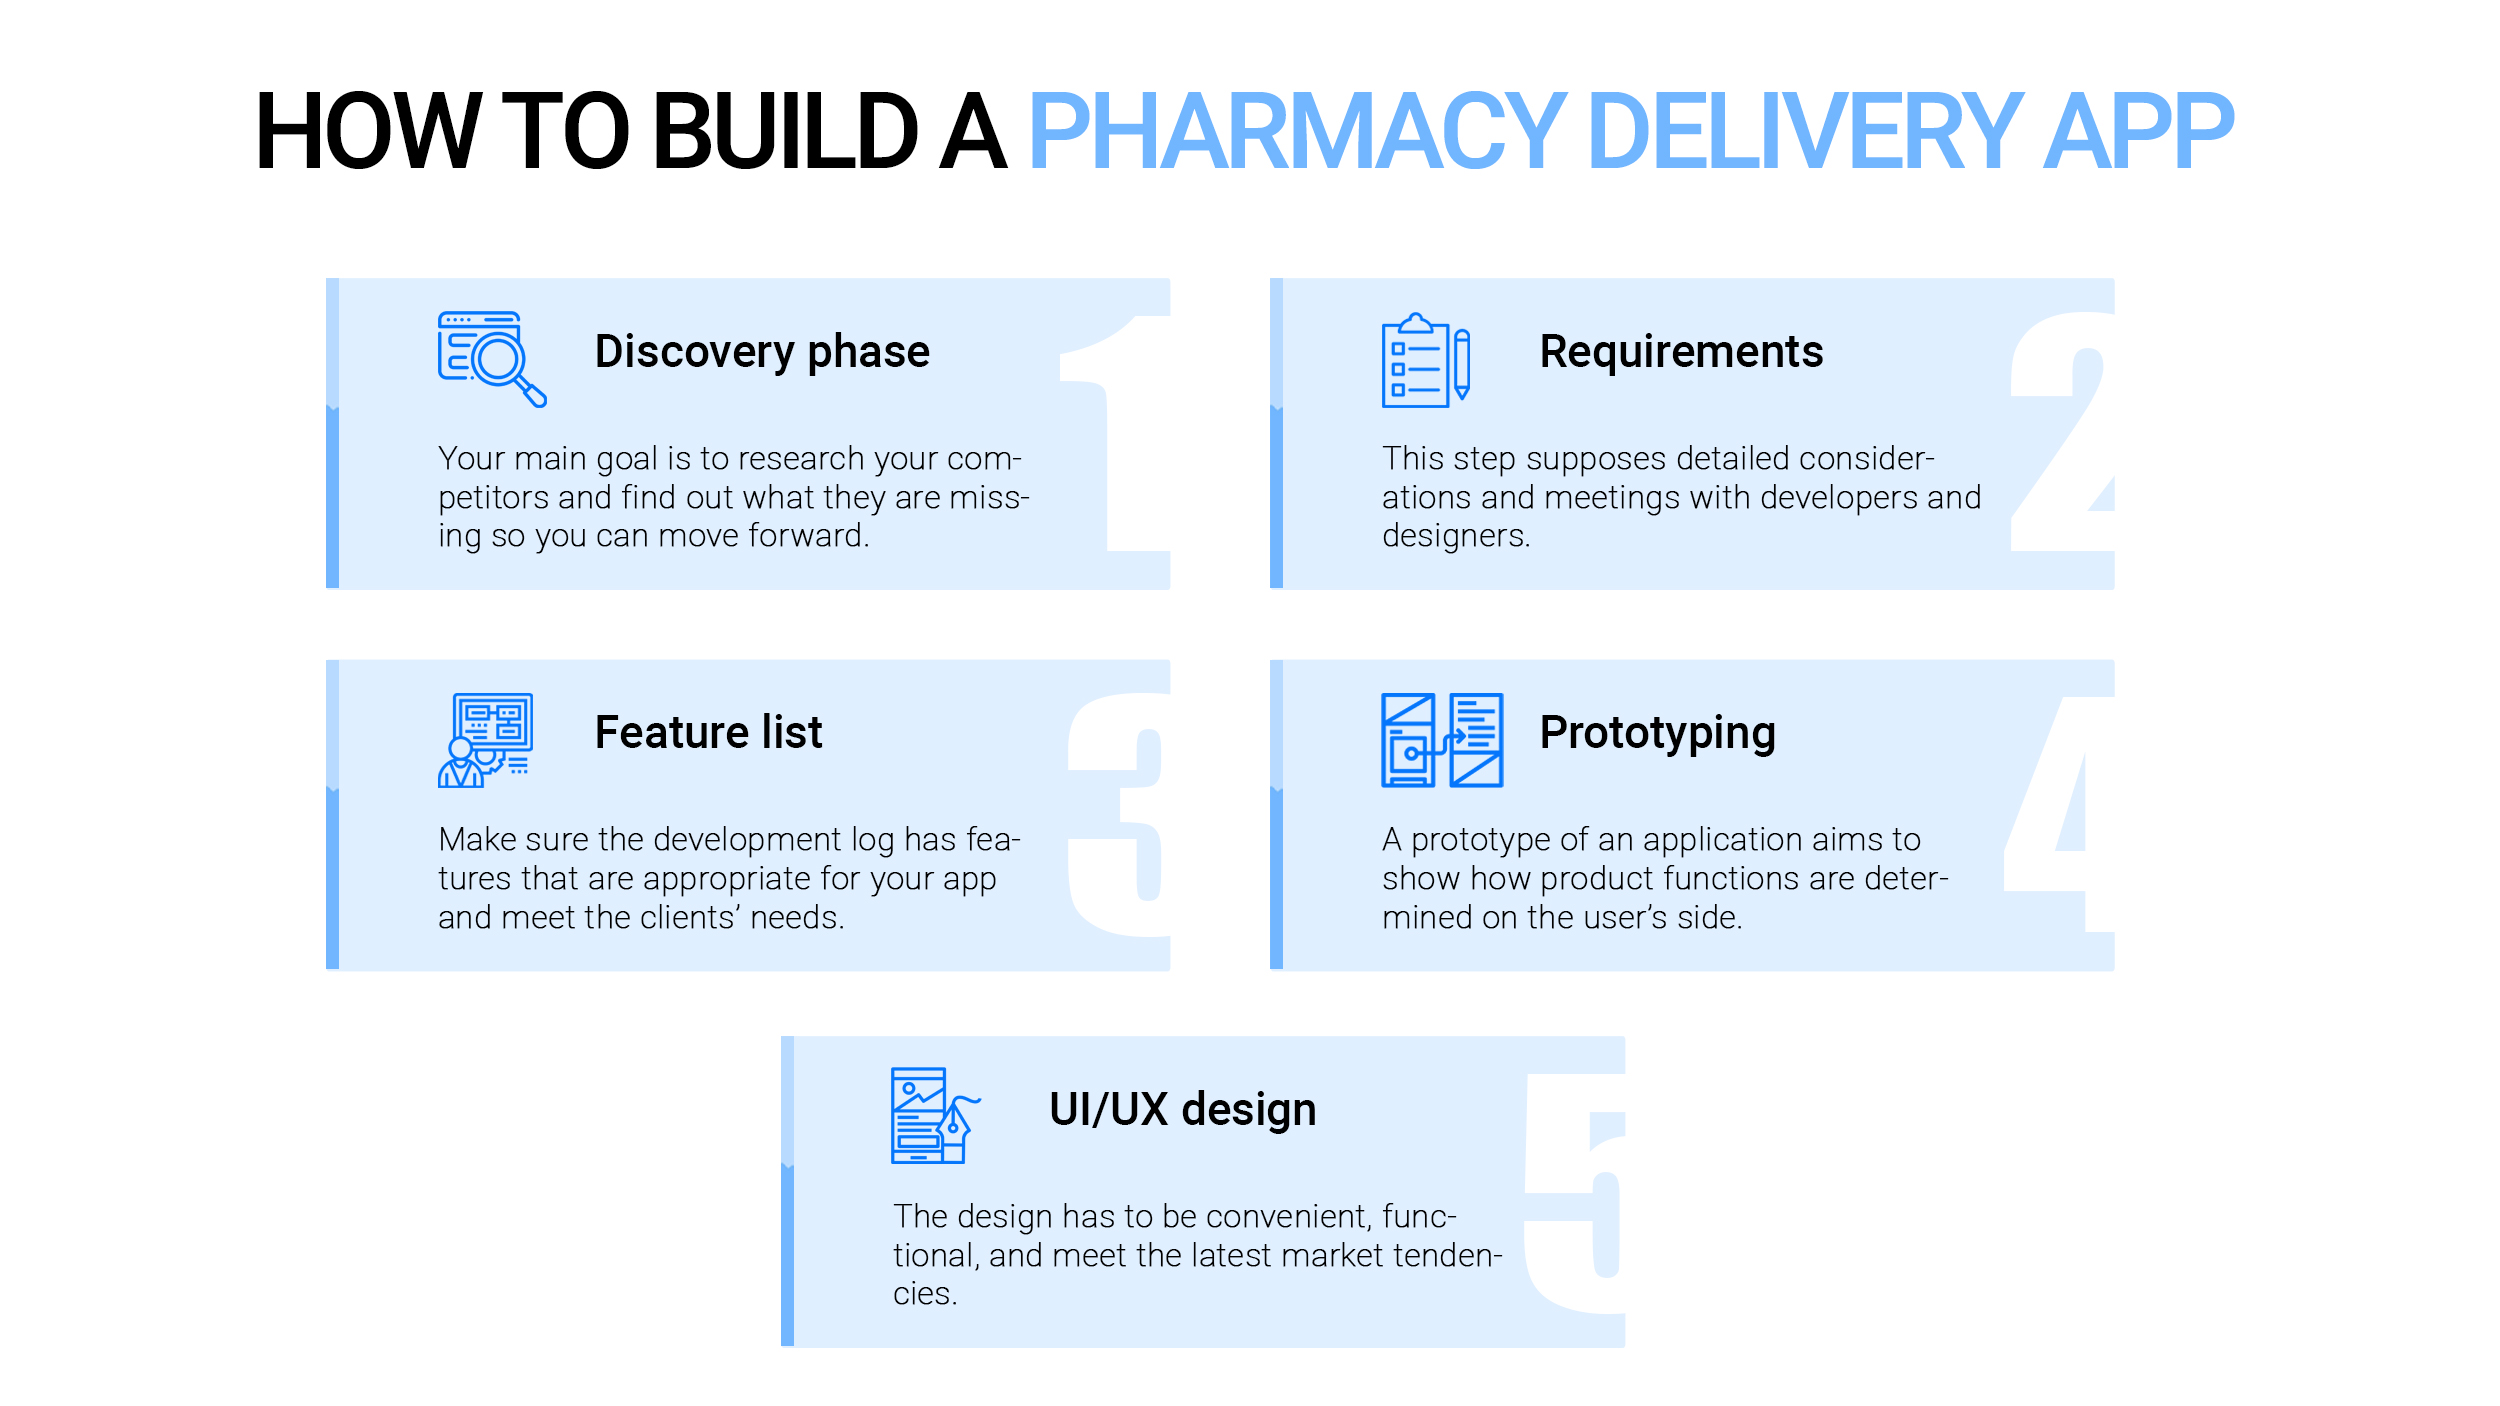 Main steps for pharmacy delivery app development